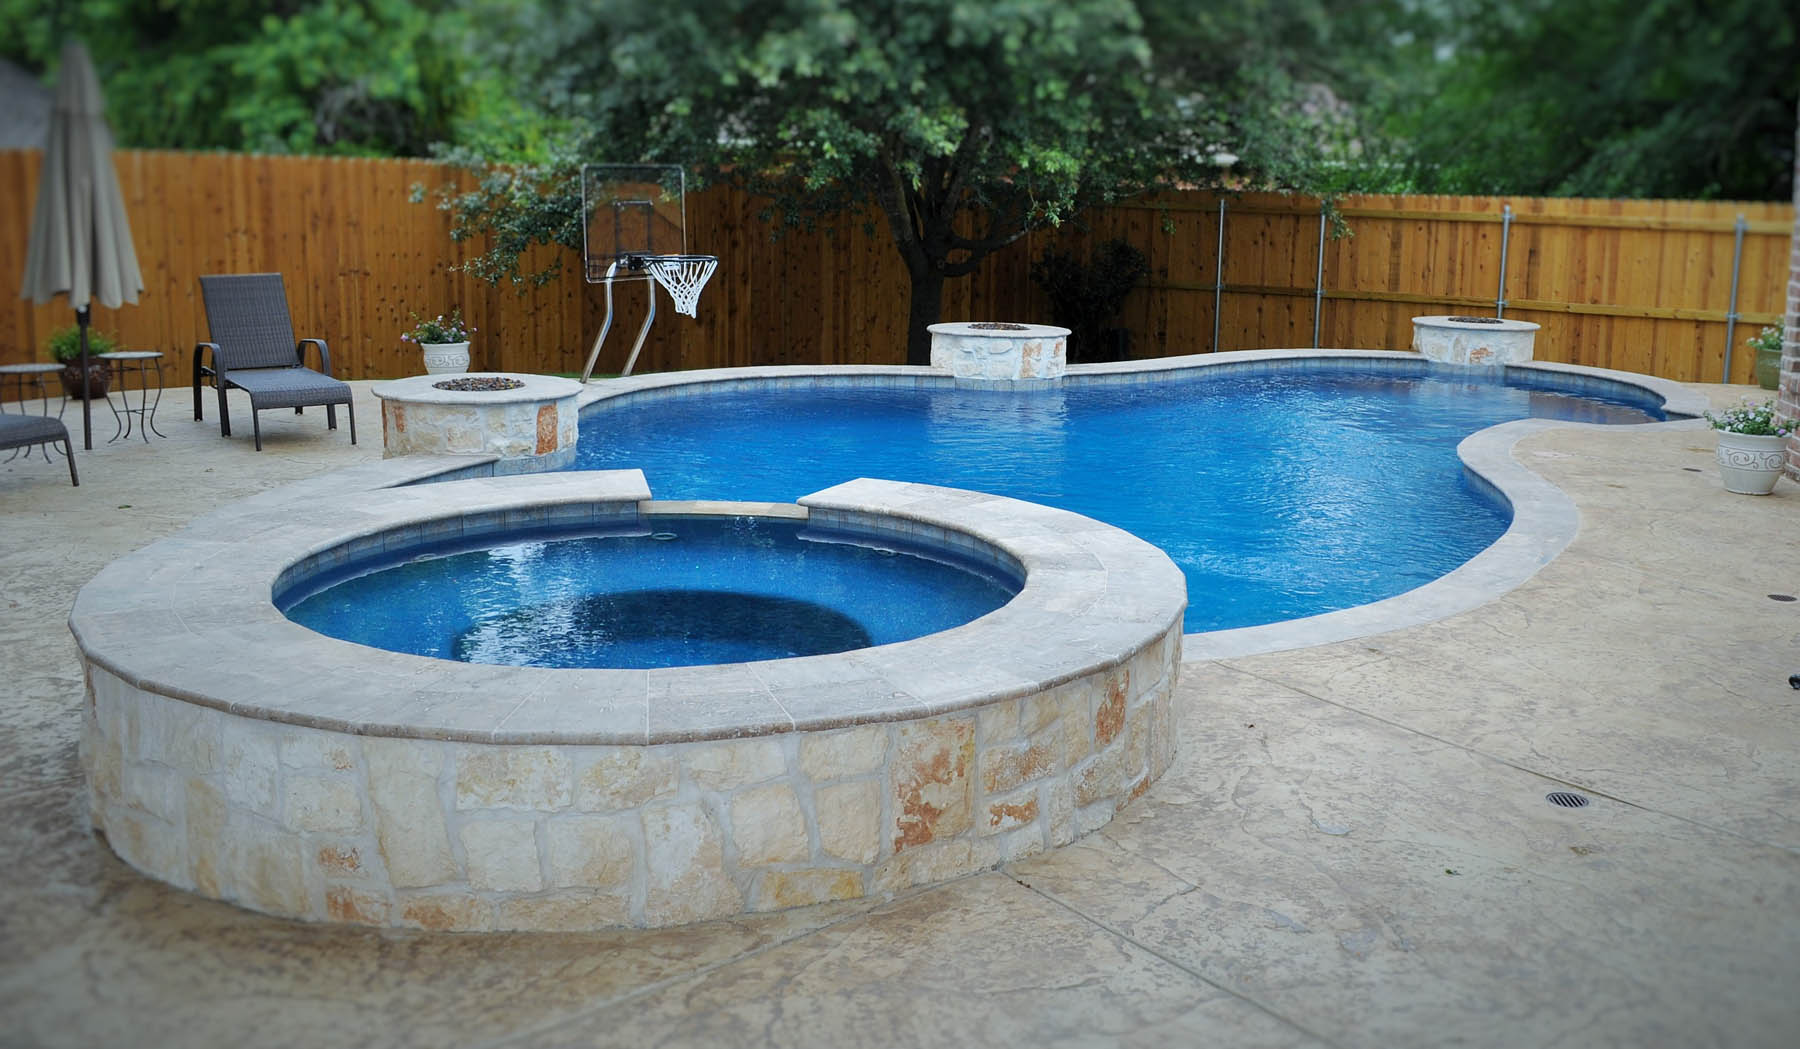 Bryan college station custom pool design photos brazos valley - Pool fire bowls ...